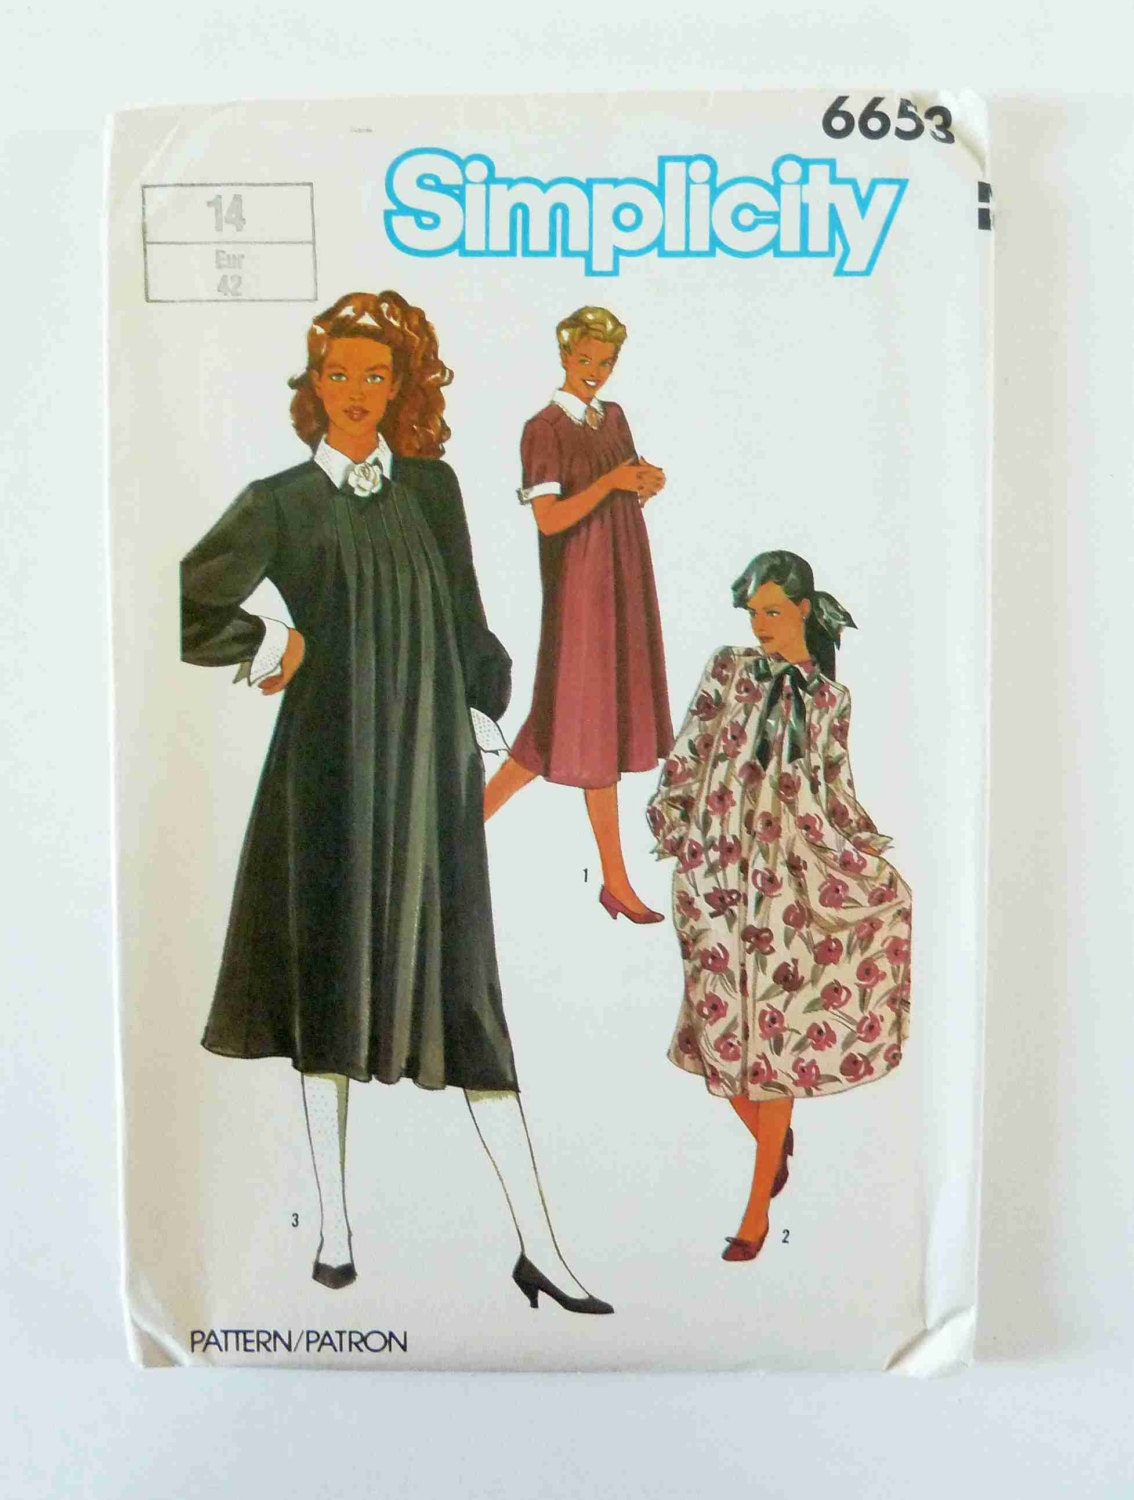 1980s maternity dress sewing pattern size 14 simplicity 6653 1980s maternity dress sewing pattern size 14 simplicity 6653 1980s maternity dress vintage maternity wear 1980s pregnancy dress ombrellifo Images